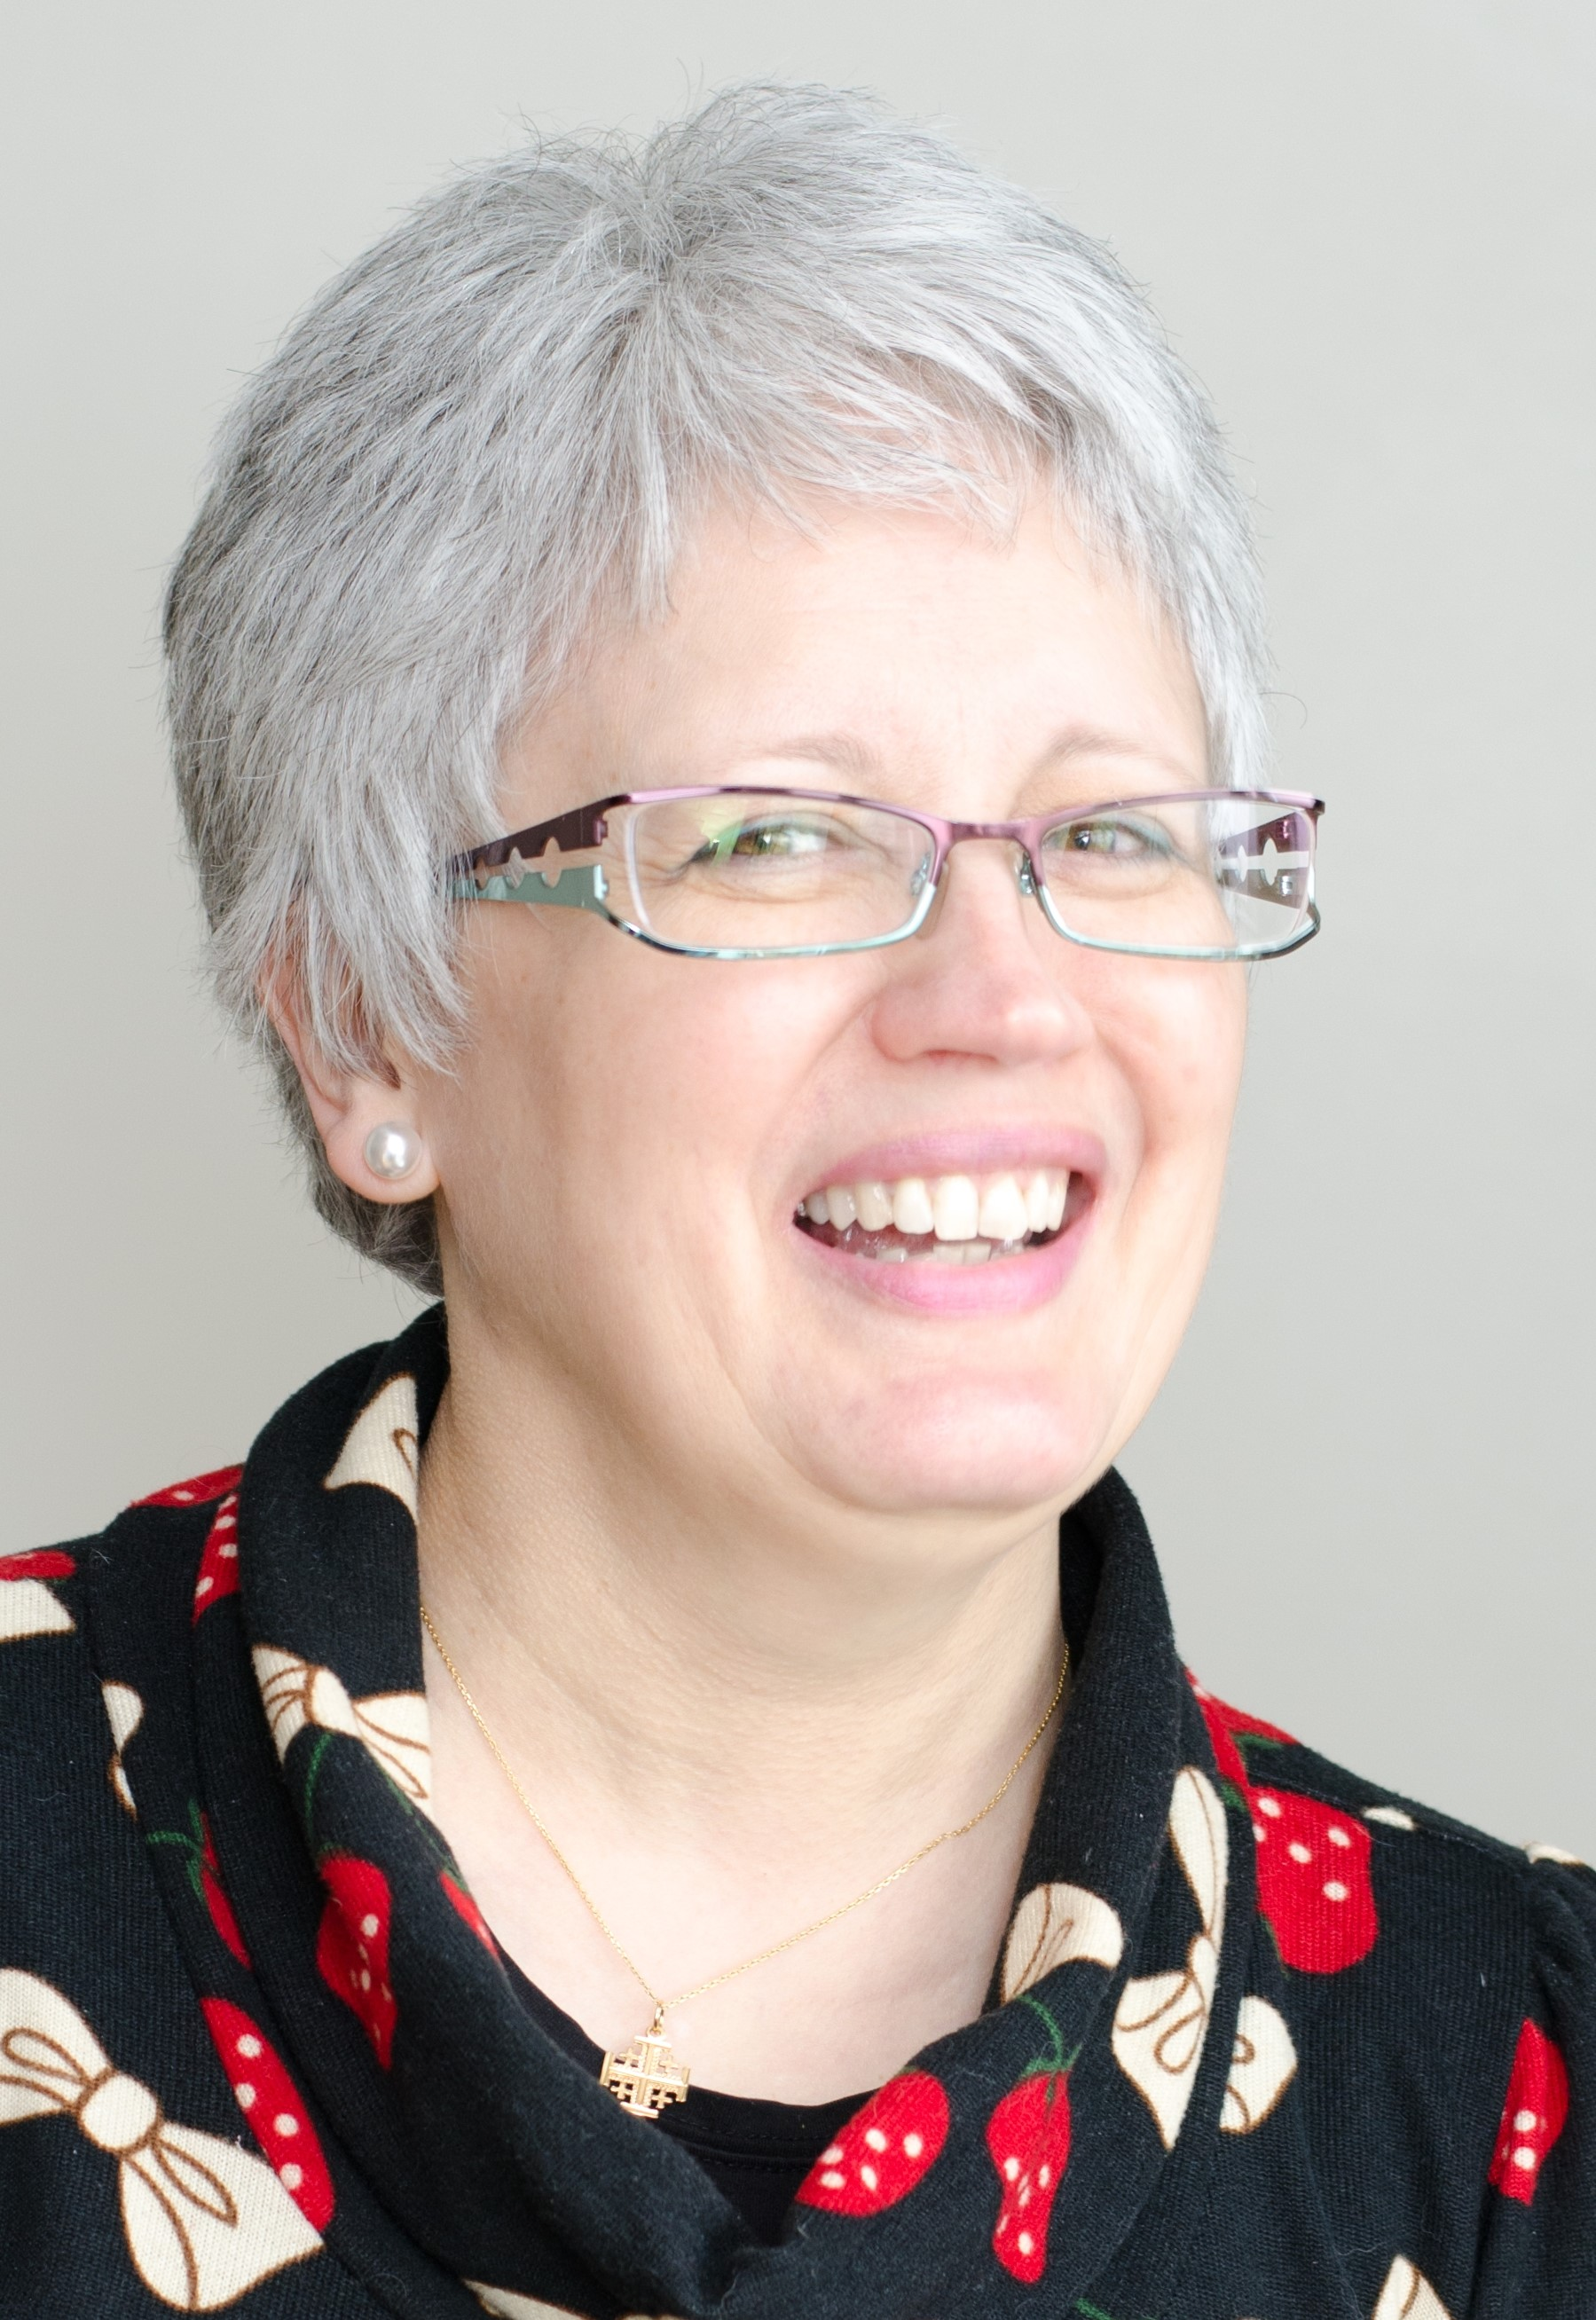 A white woman with grey hair and glasses, wearing a black top with white-and-red patterns, smiles against a pale grey background.